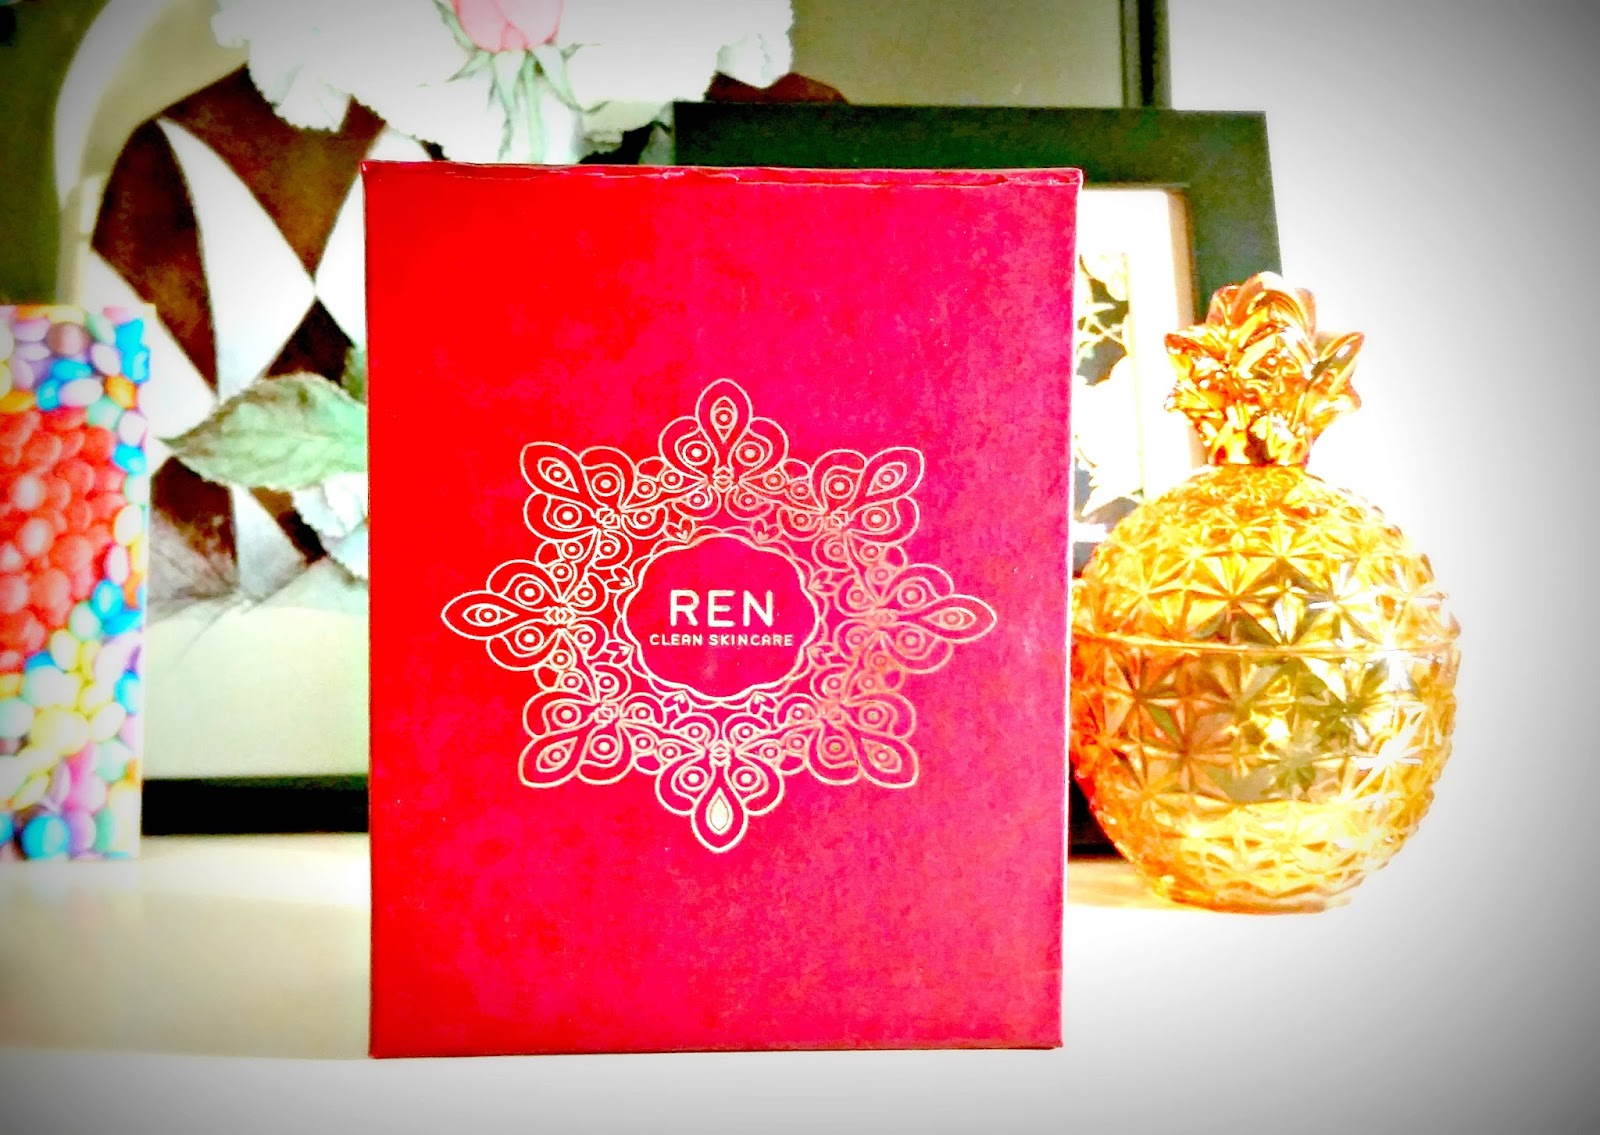 REN rose otto gift set giveaway